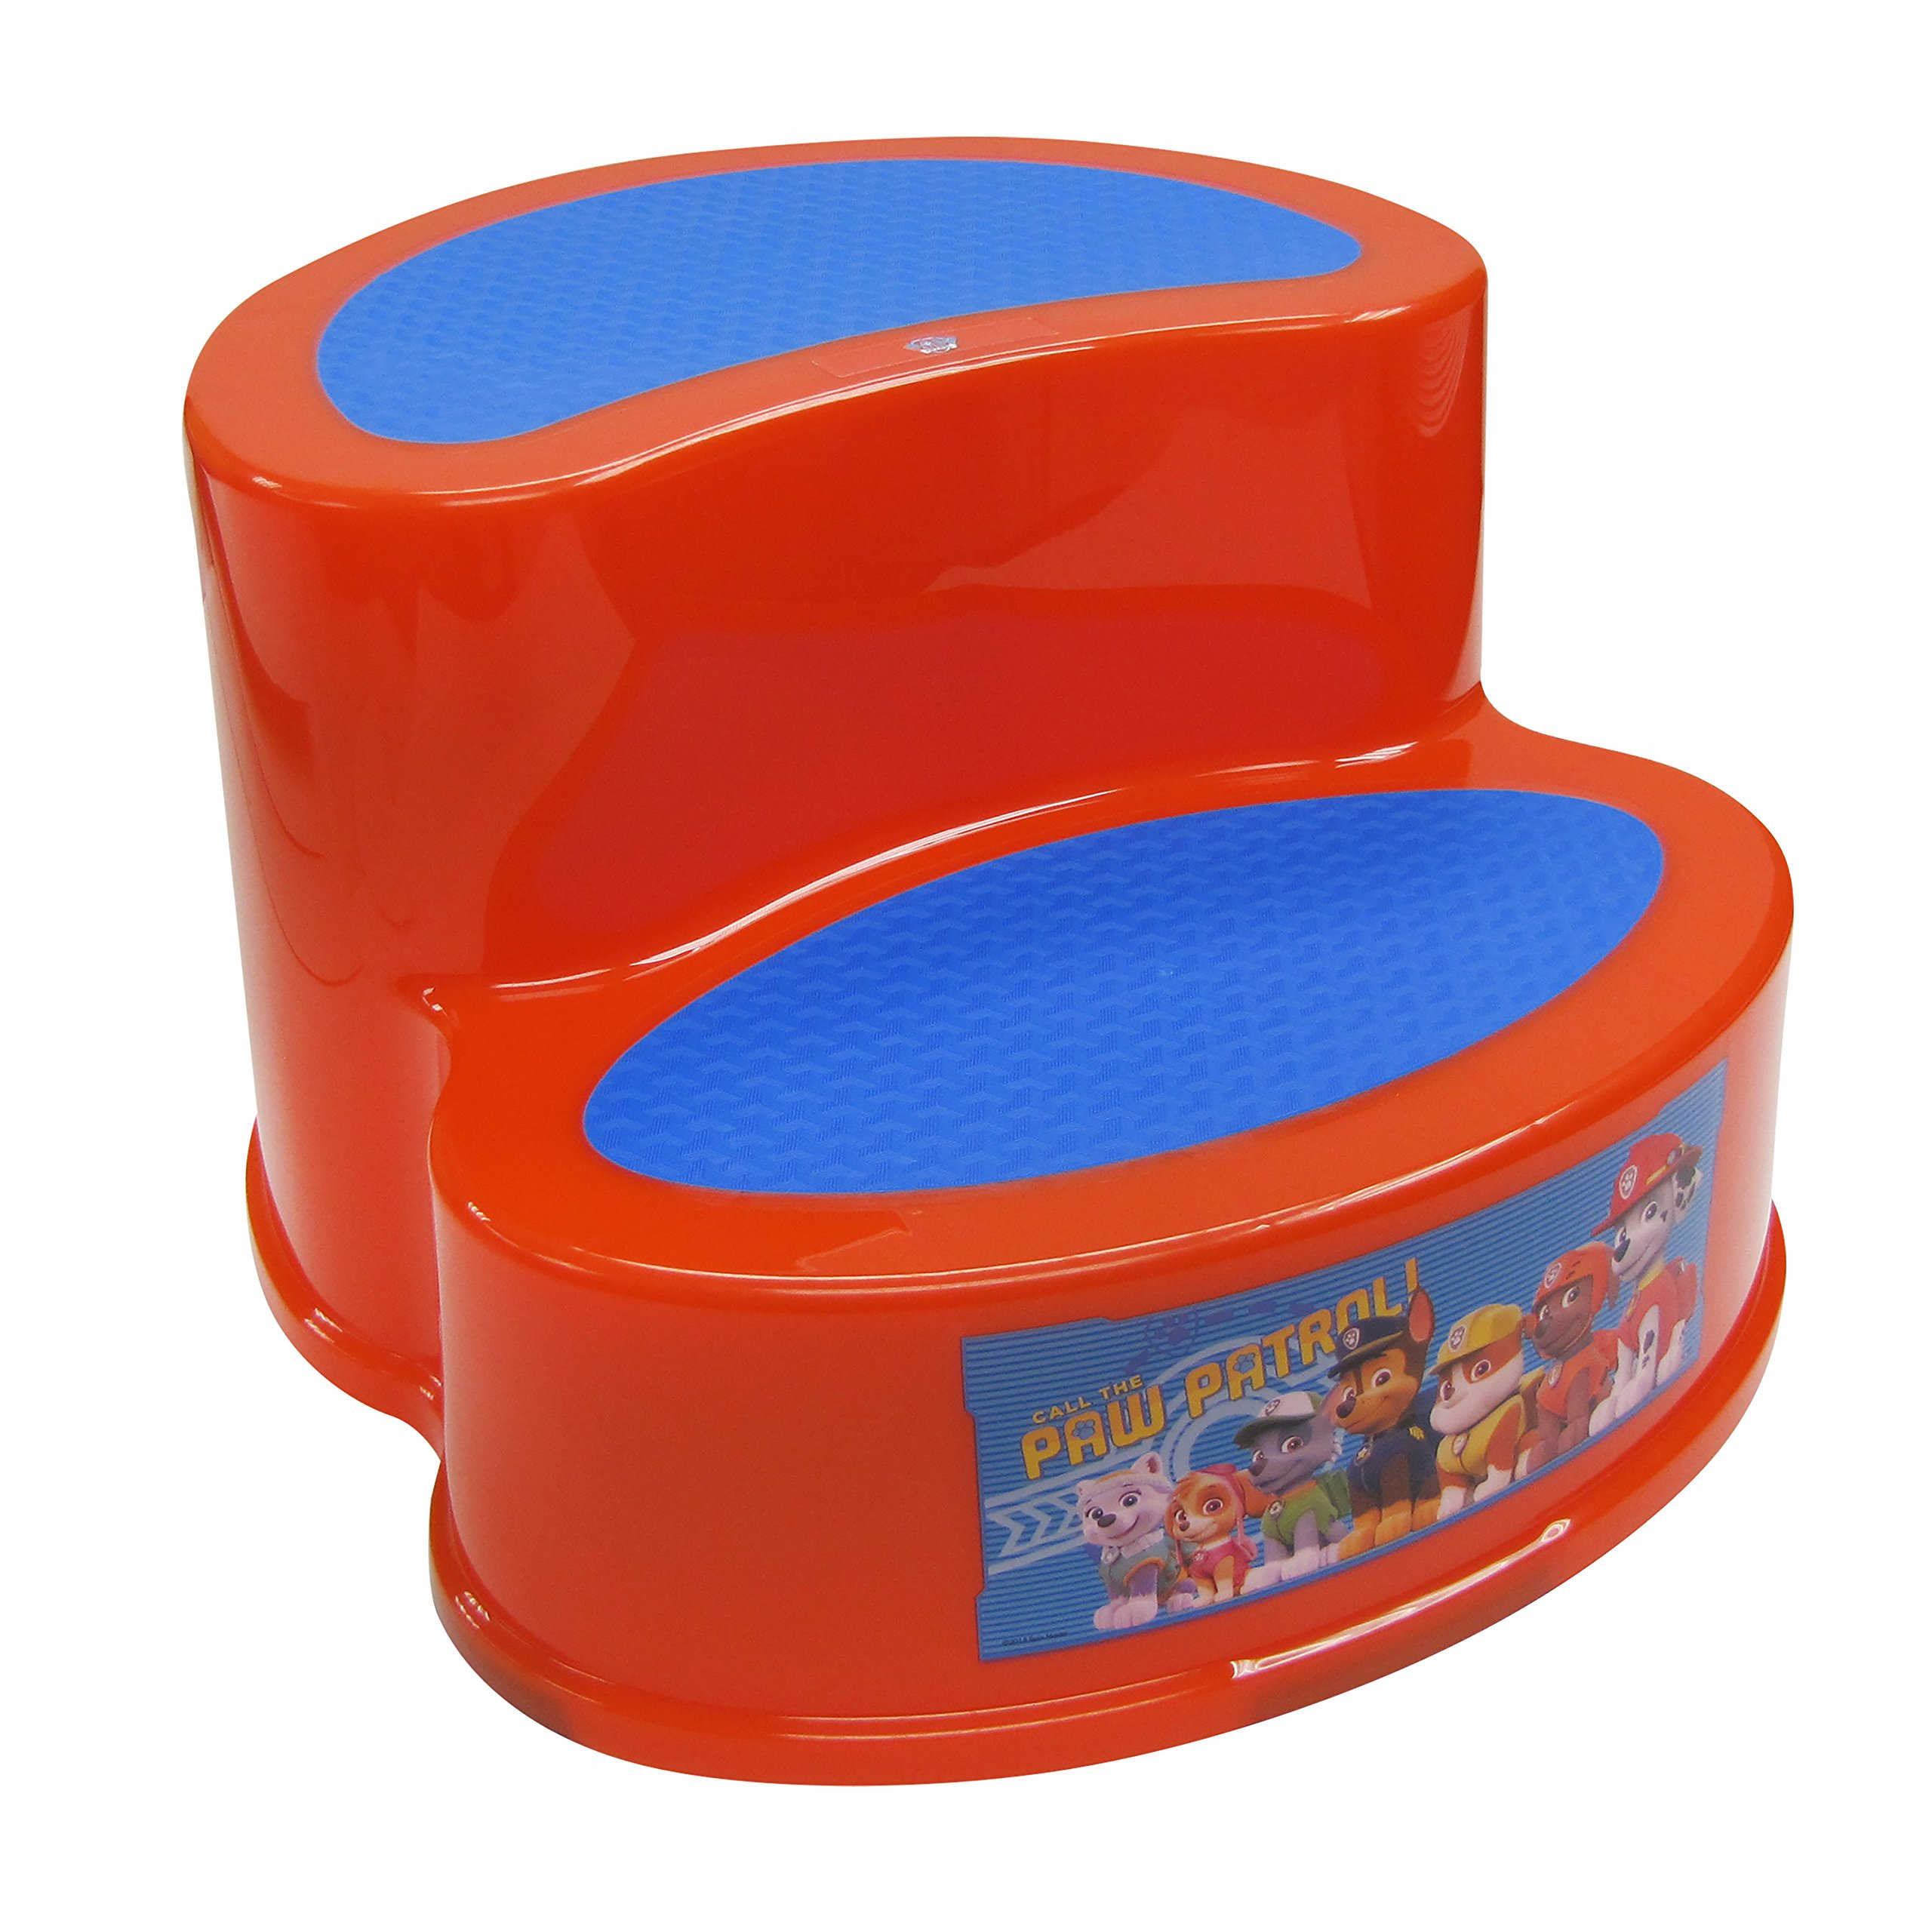 Nickelodeon Paw Patrol 2-Step Transition Step Stool, Red/Blue by Nickelodeon